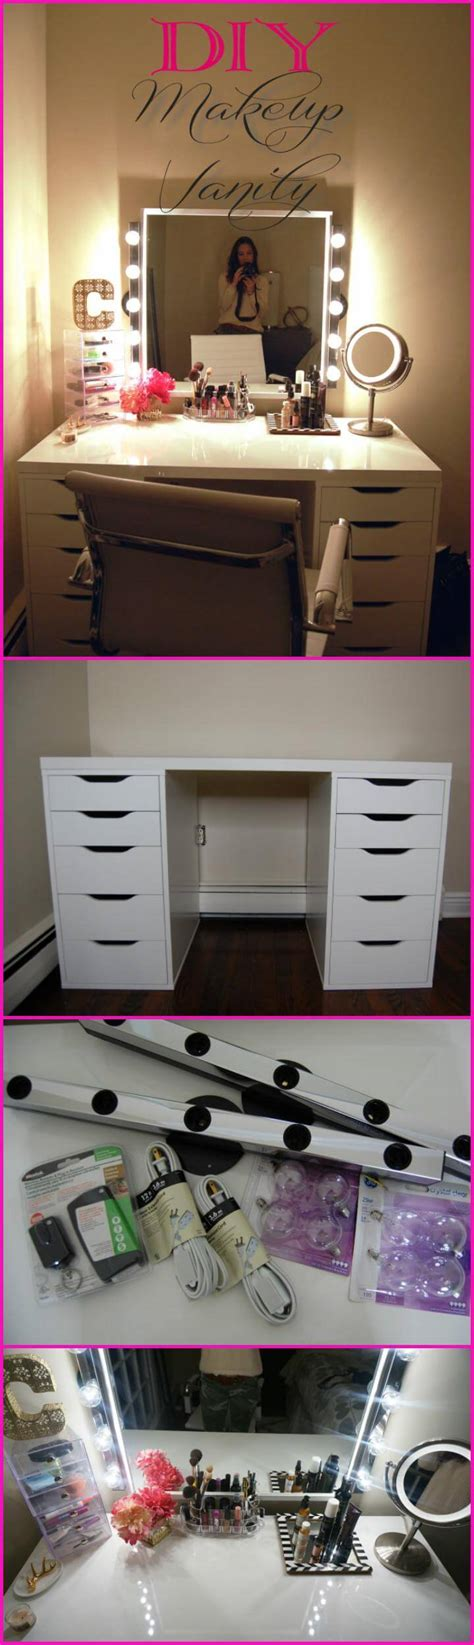 Handmade Makeup Vanity - 20 diy makeup vanity tutorials diy your own makeup